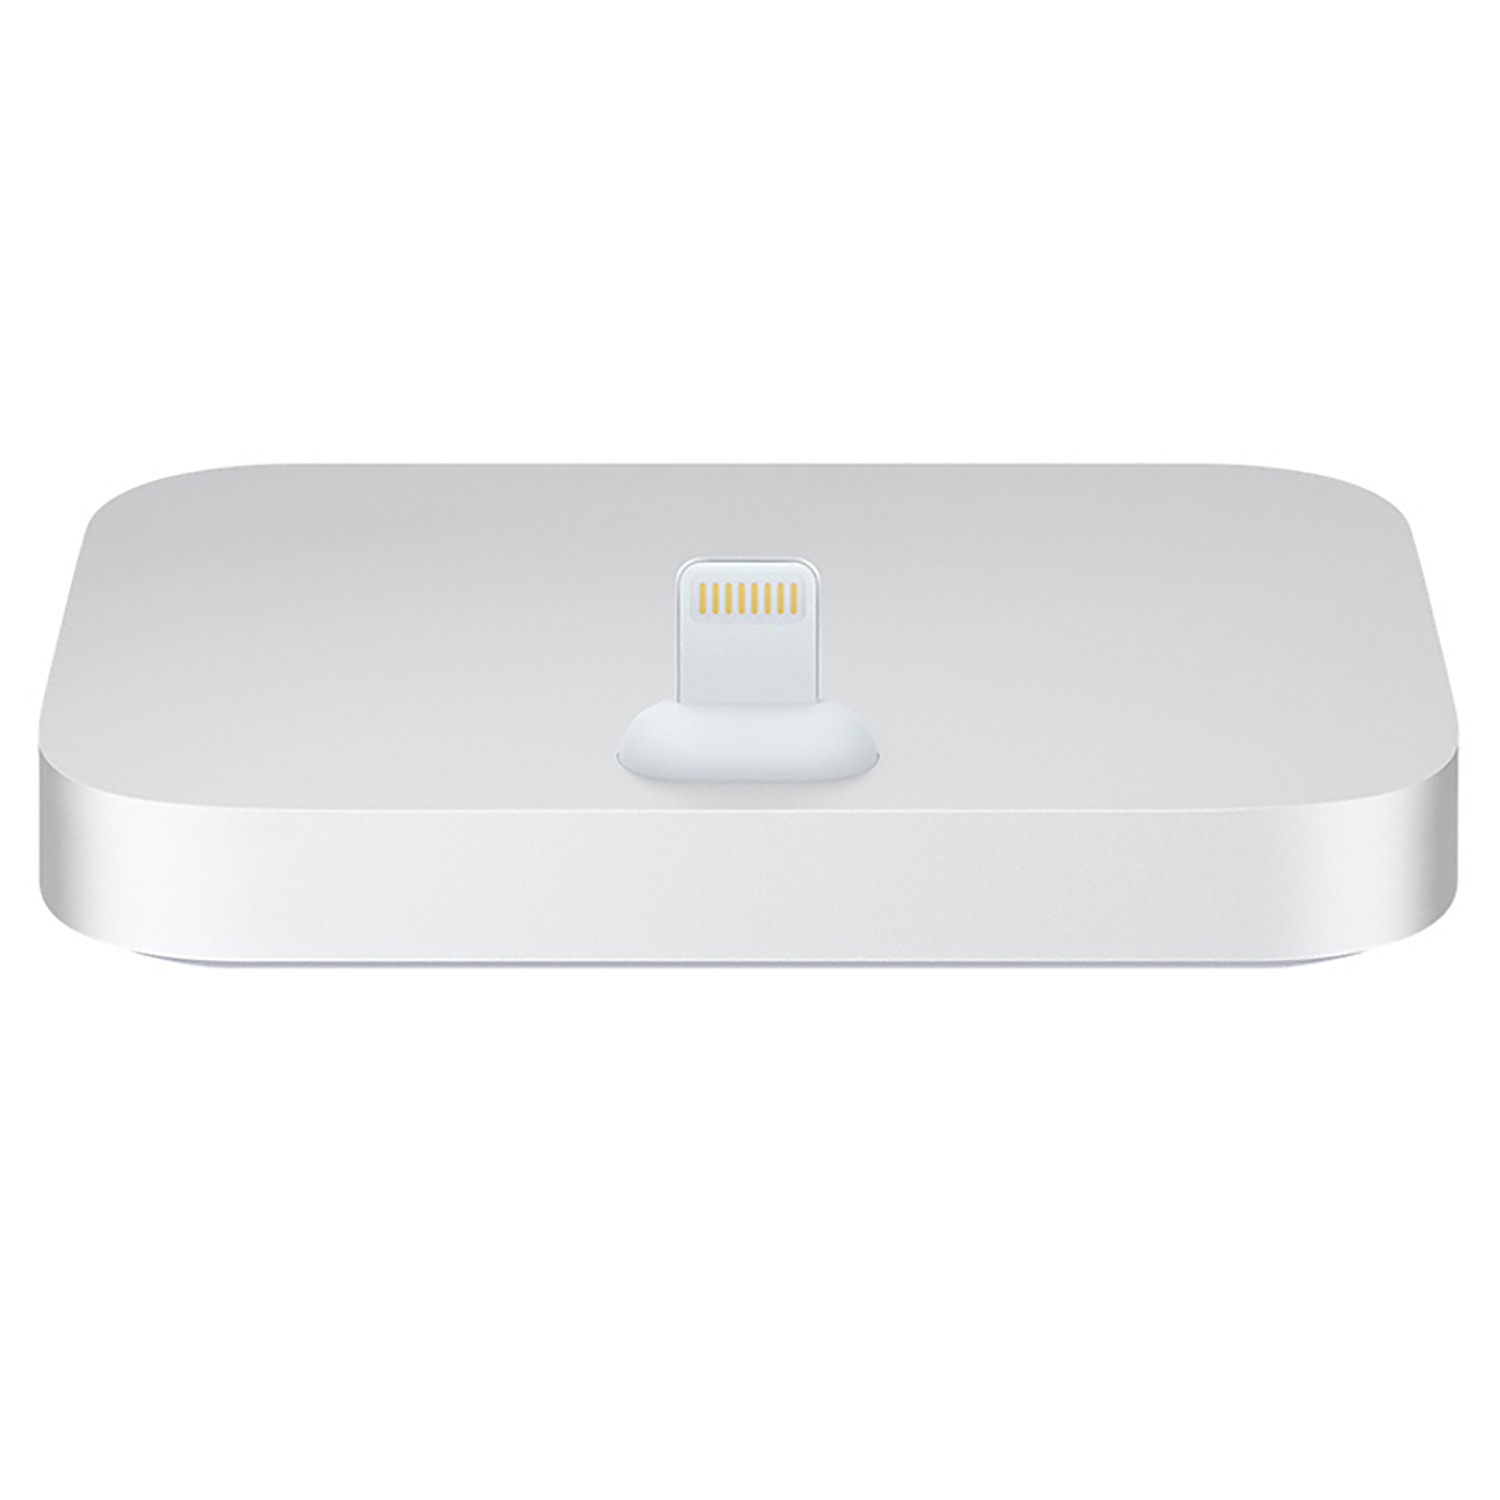 Apple iPhone Lightning Dock cheapest retail price